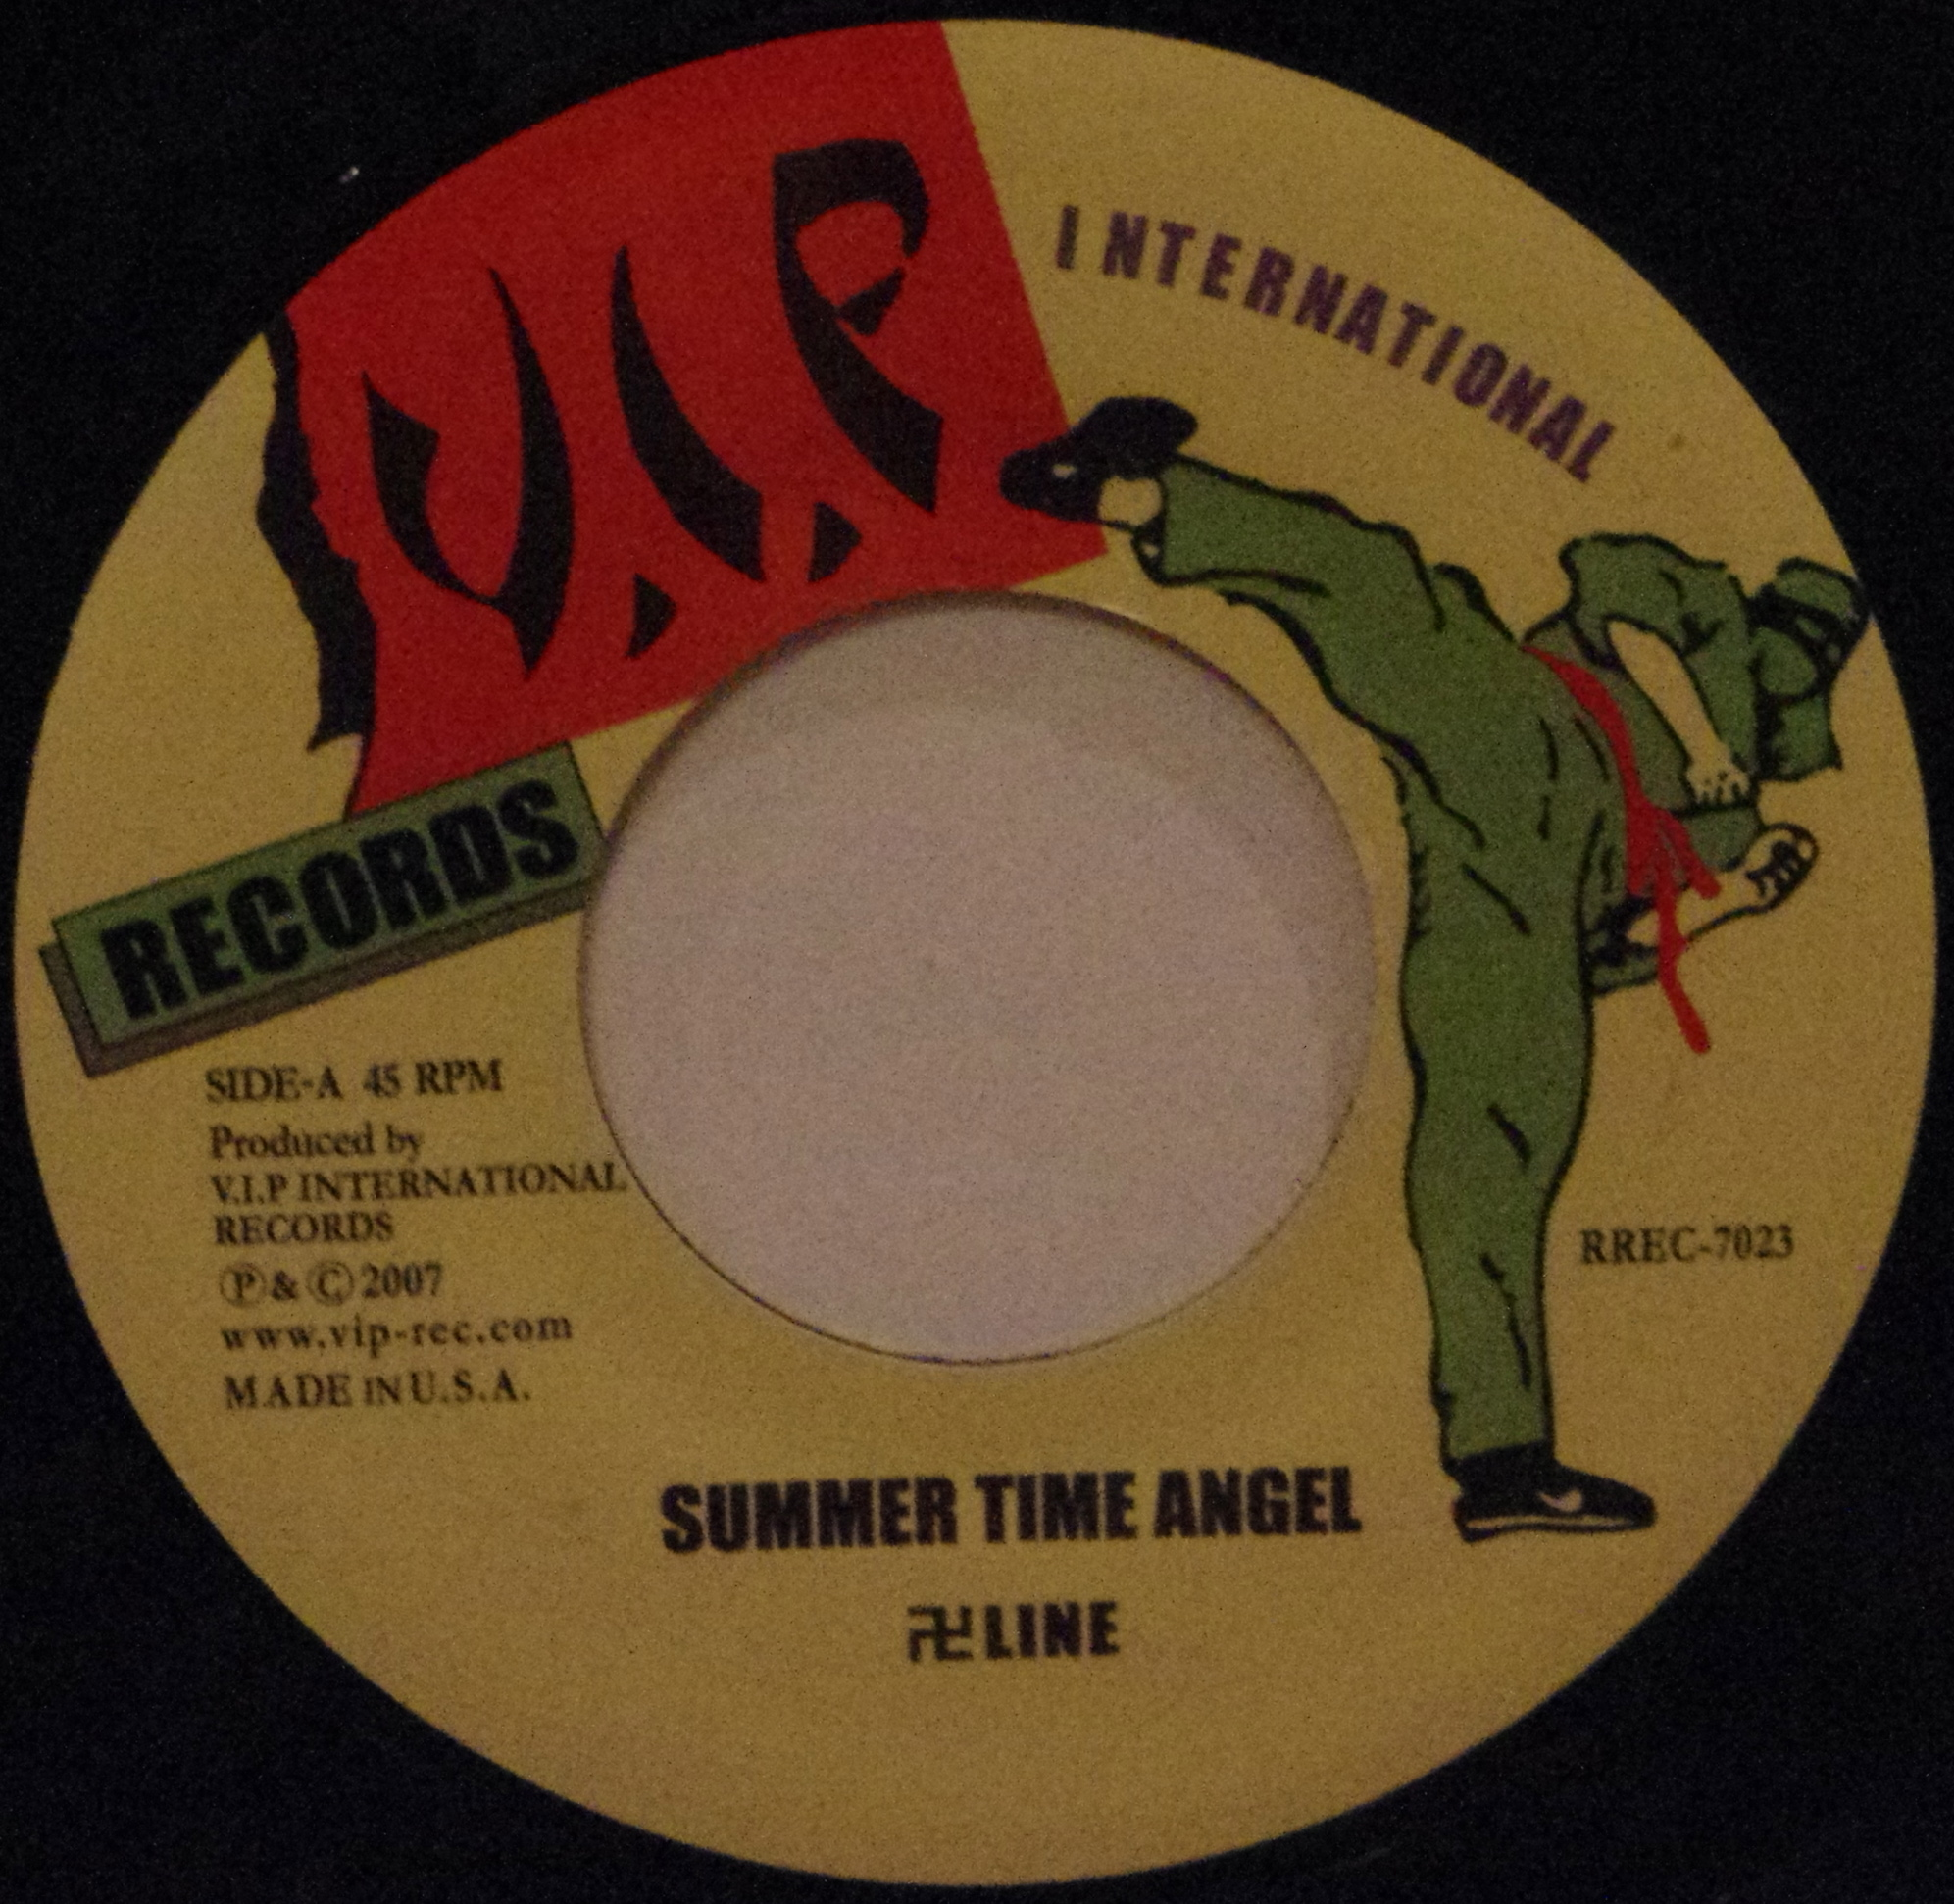 GOODY / SUMMER TIME ANGEL